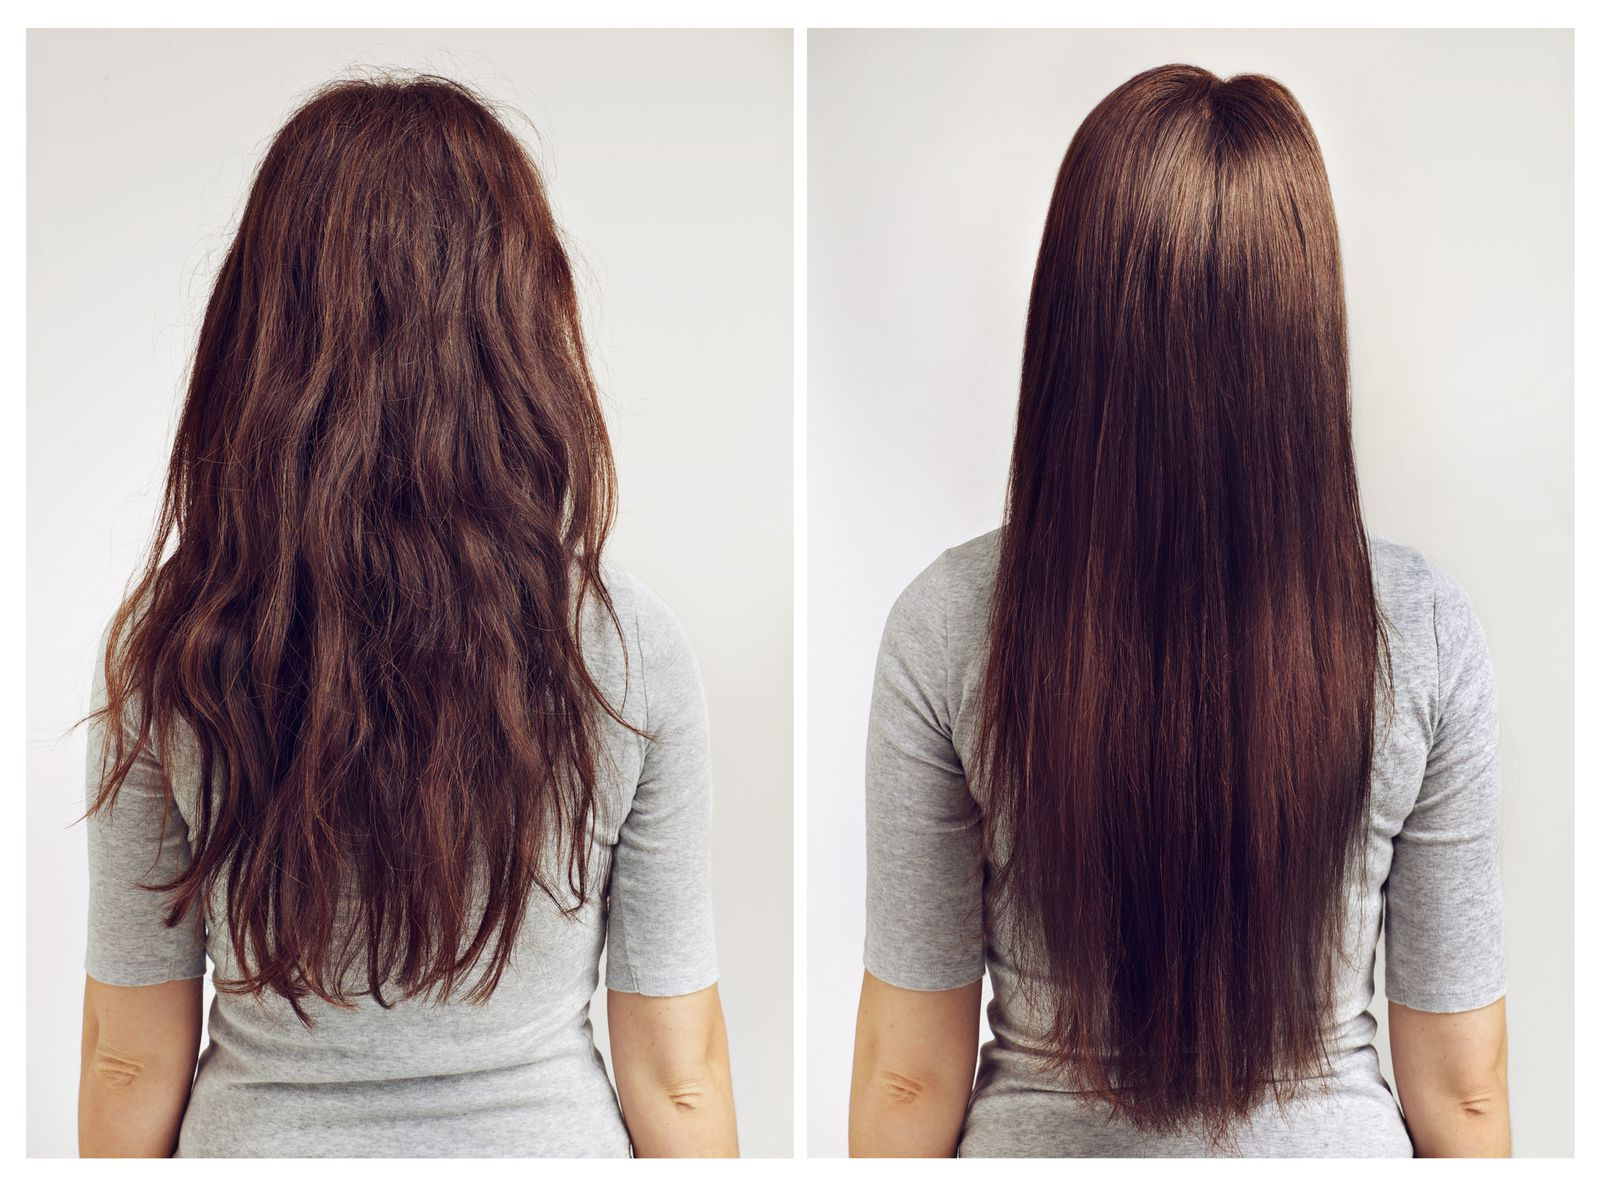 17 Things You Need to Know Before Chemically Straightening